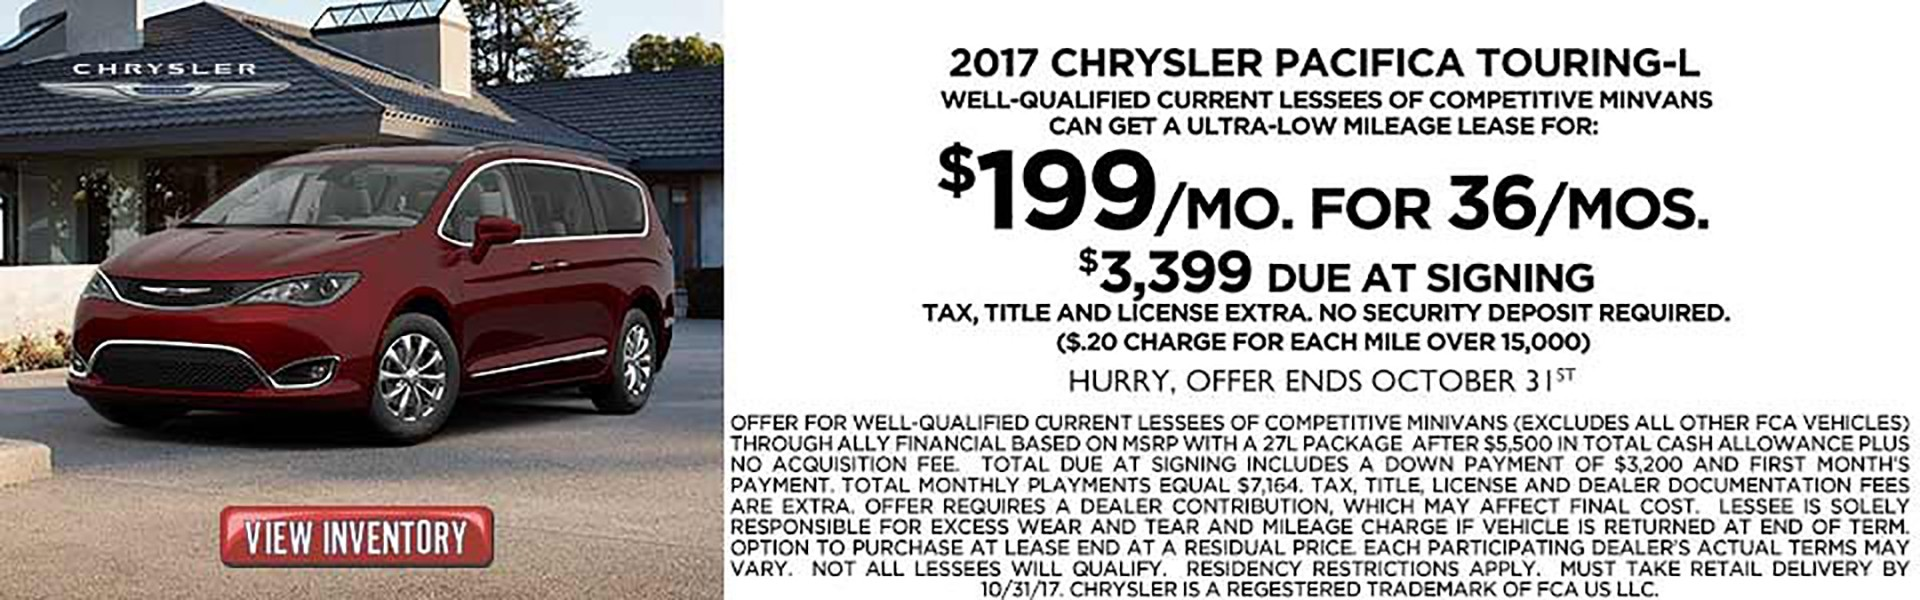 Major Chrysler Dodge Jeep Ram Dealer In Long Island City Ny